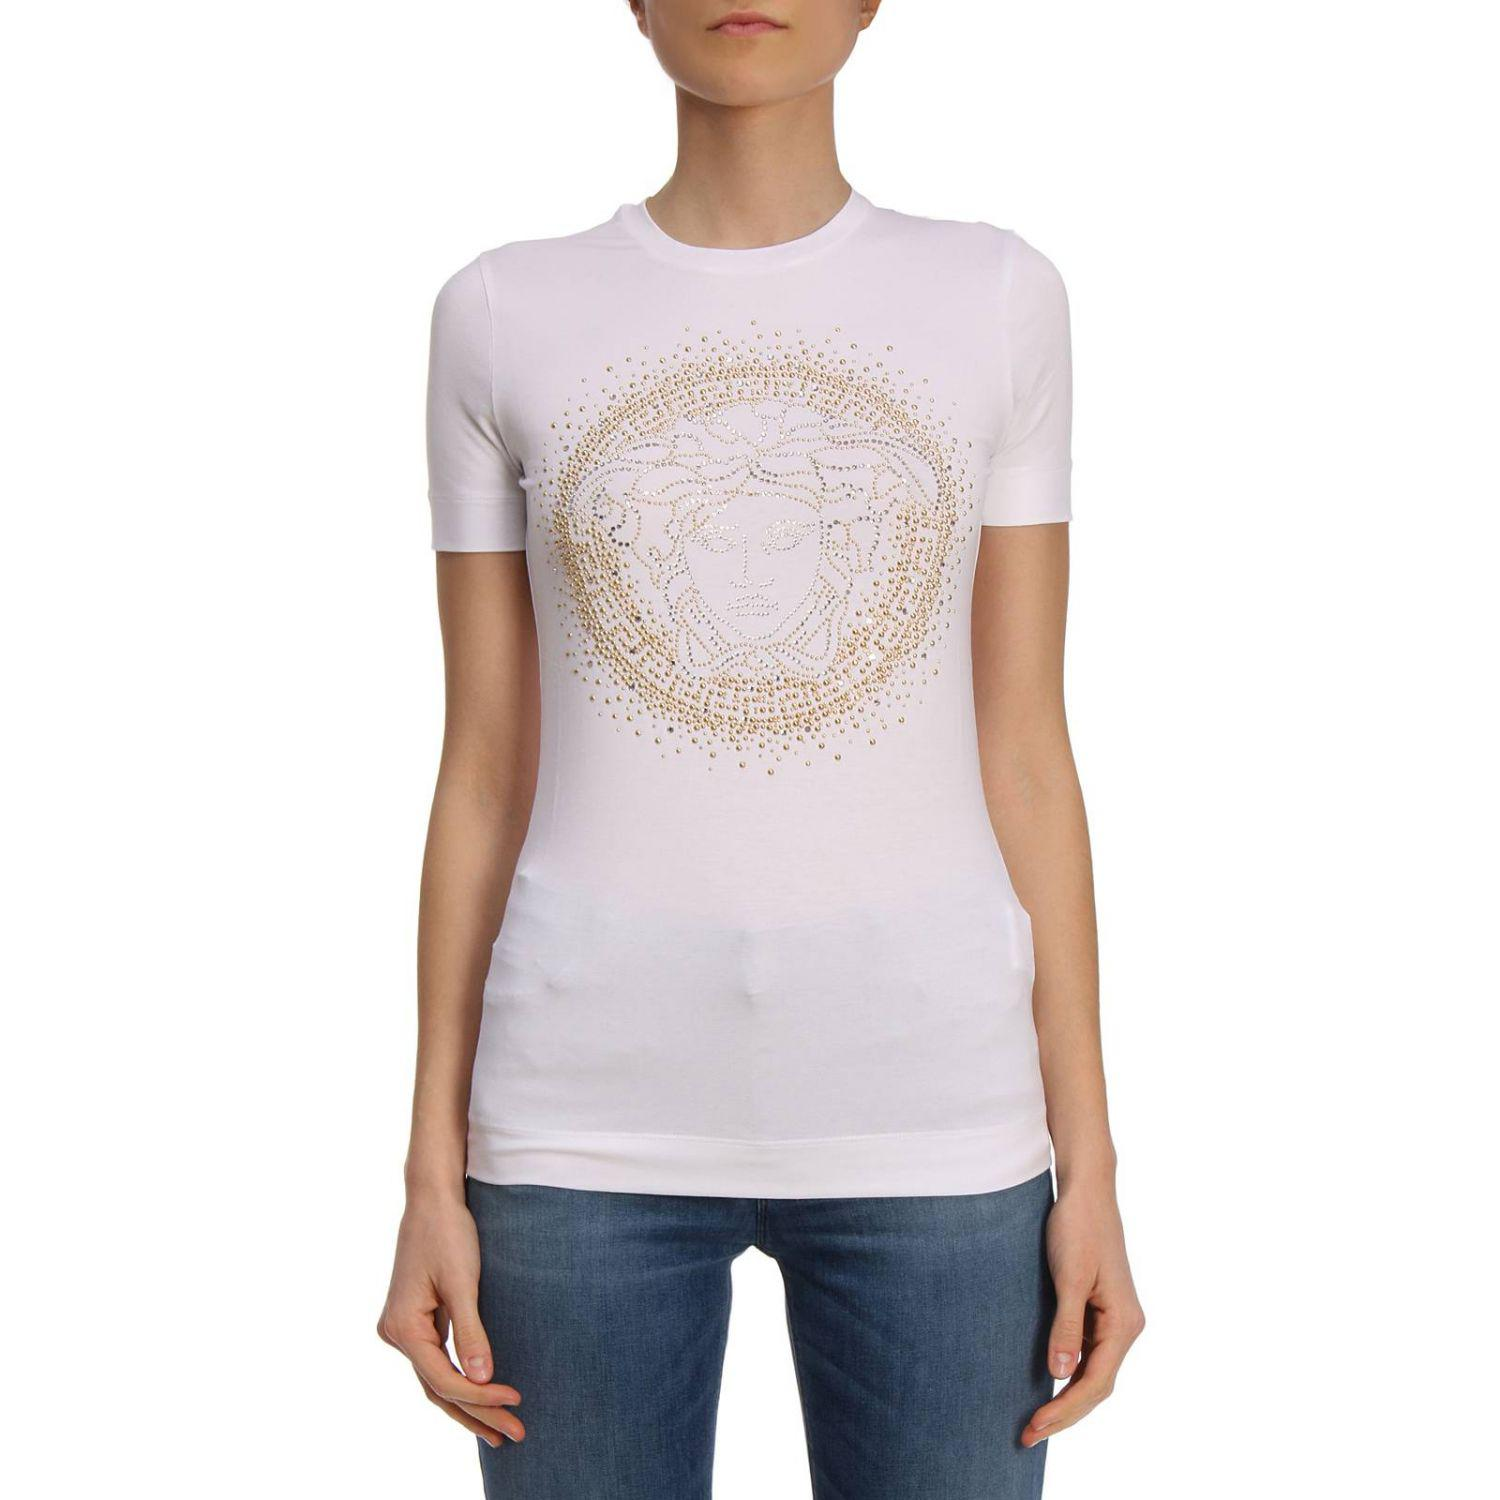 8bc77f17a5dd Versace T-shirt Women in White - Lyst